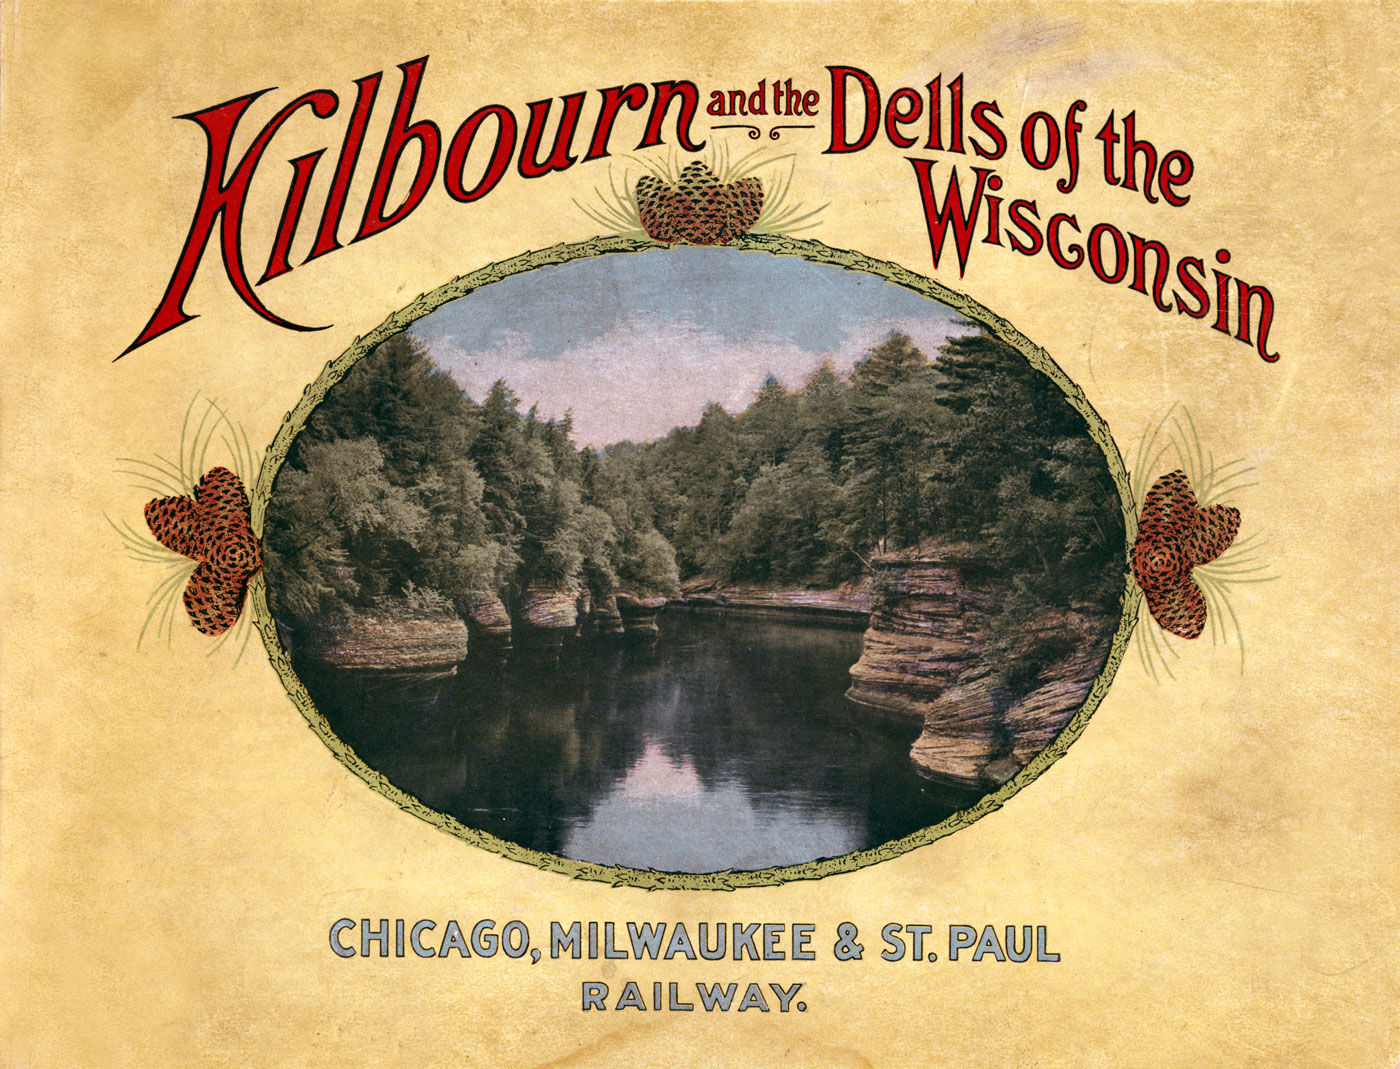 Advertisement for the Chicago, Milwaukee, & St. Paul Railway, circa 1906